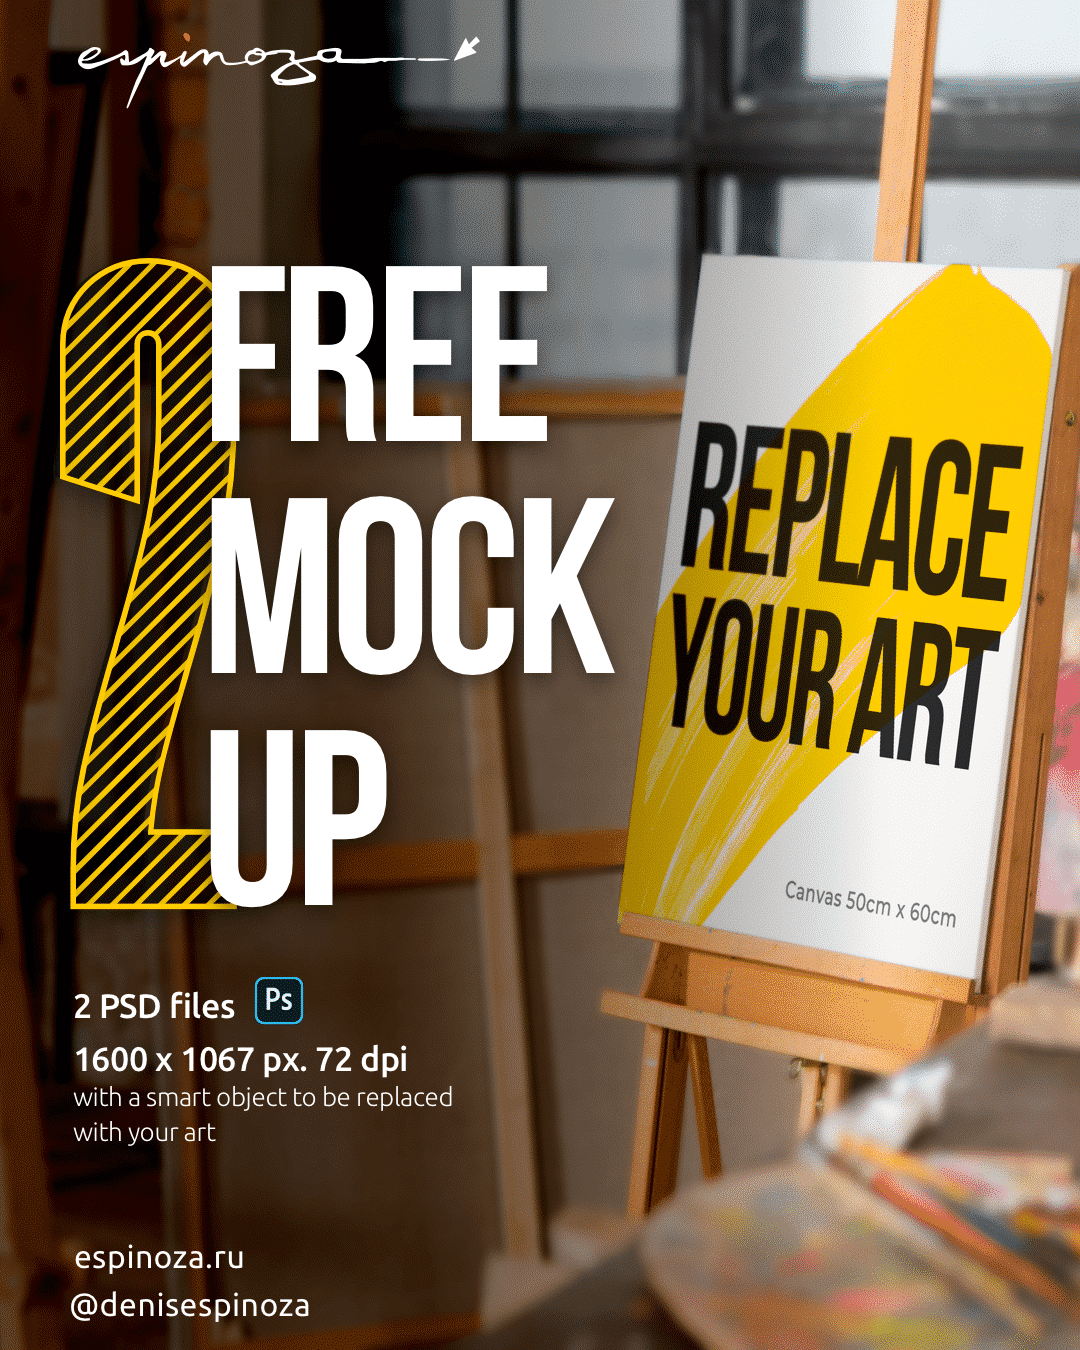 FREE Canvas Realistic Studio Mock-Up